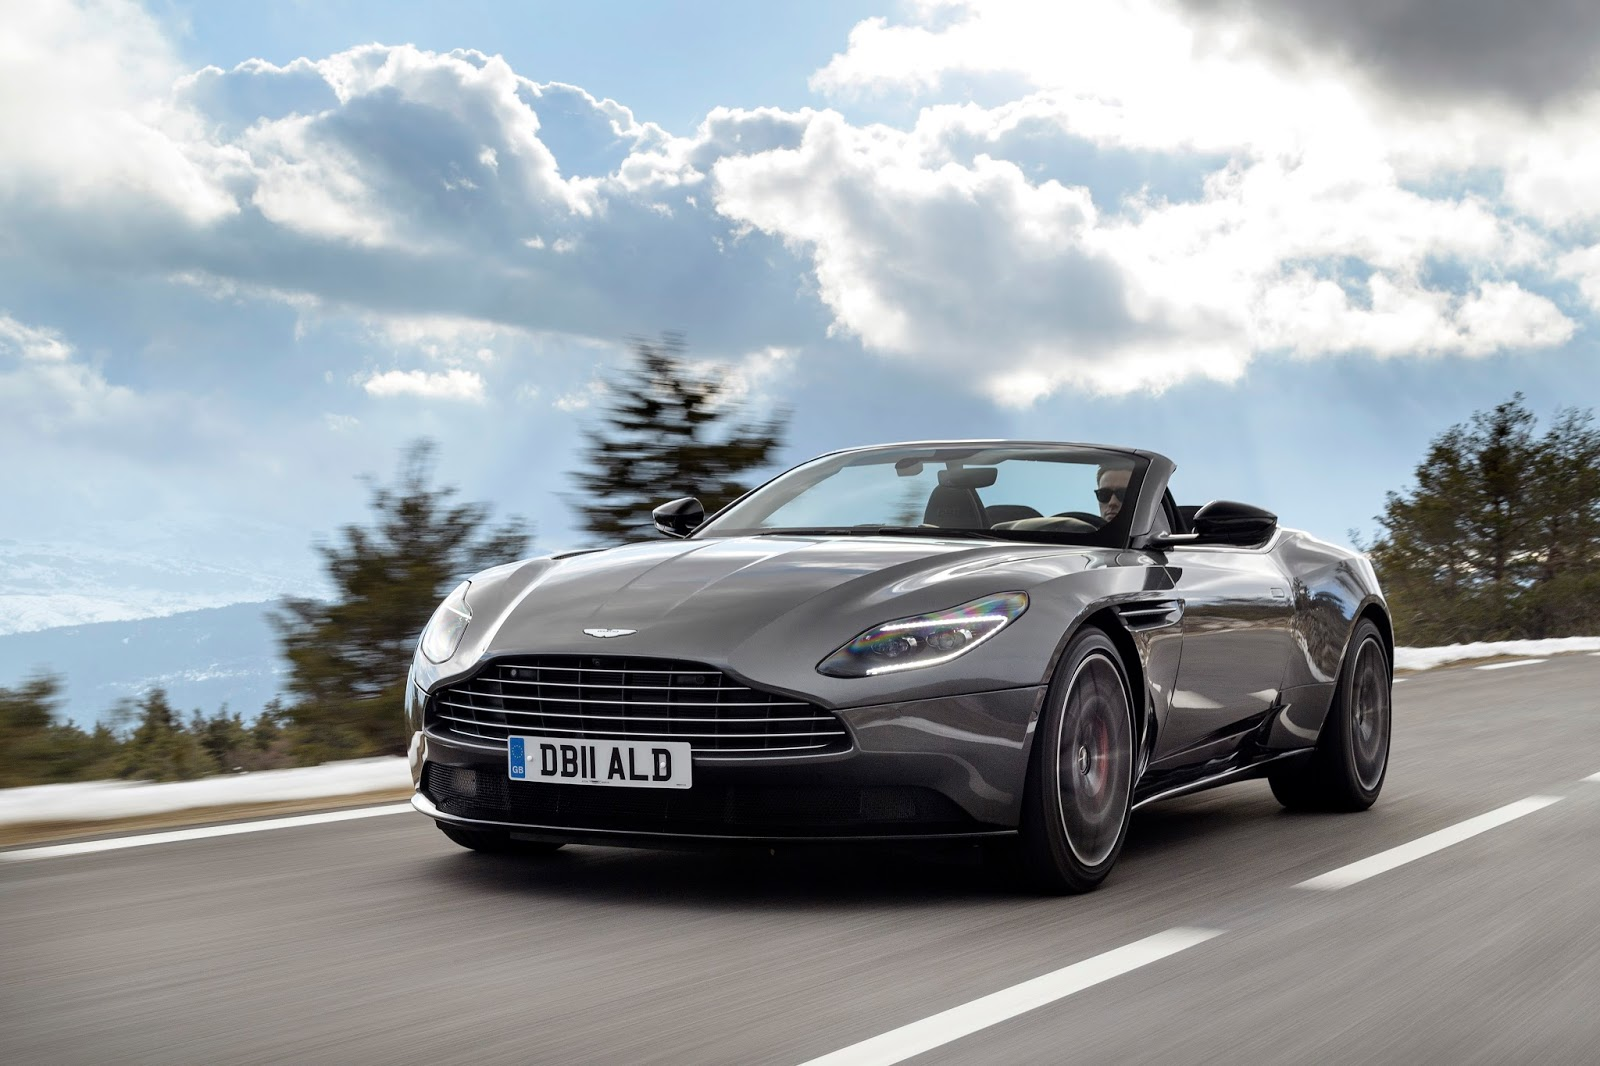 Aston Martin named fastest growing car brand in the world ...